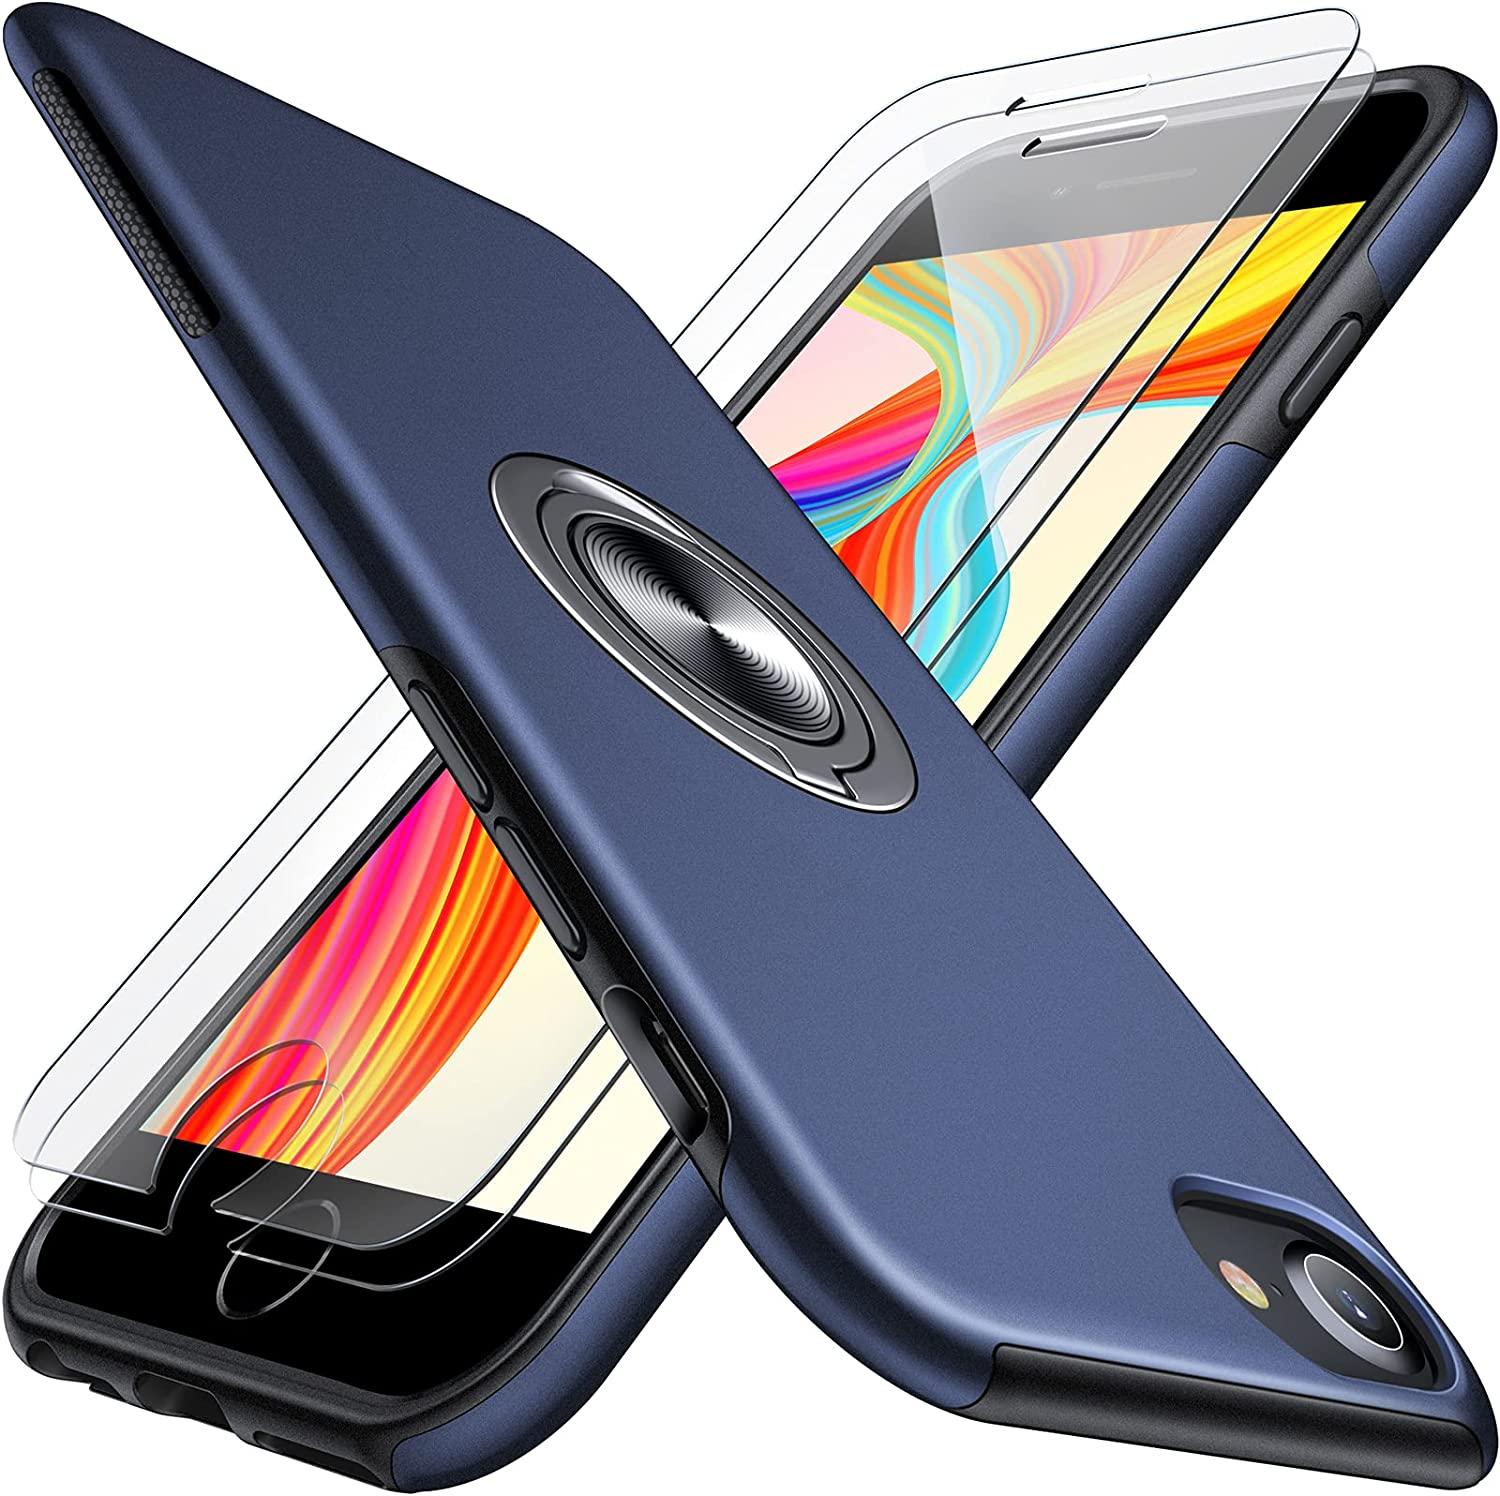 JAME for iPhone SE 2020 Case, iPhone 8 case, Ultra Slim iPhone 7 Case with 2Pcs Tempered Glass Screen Protector, with Invisible Ring Stand, Soft Silicone Full Body Shockproof Phone Case, 4.7